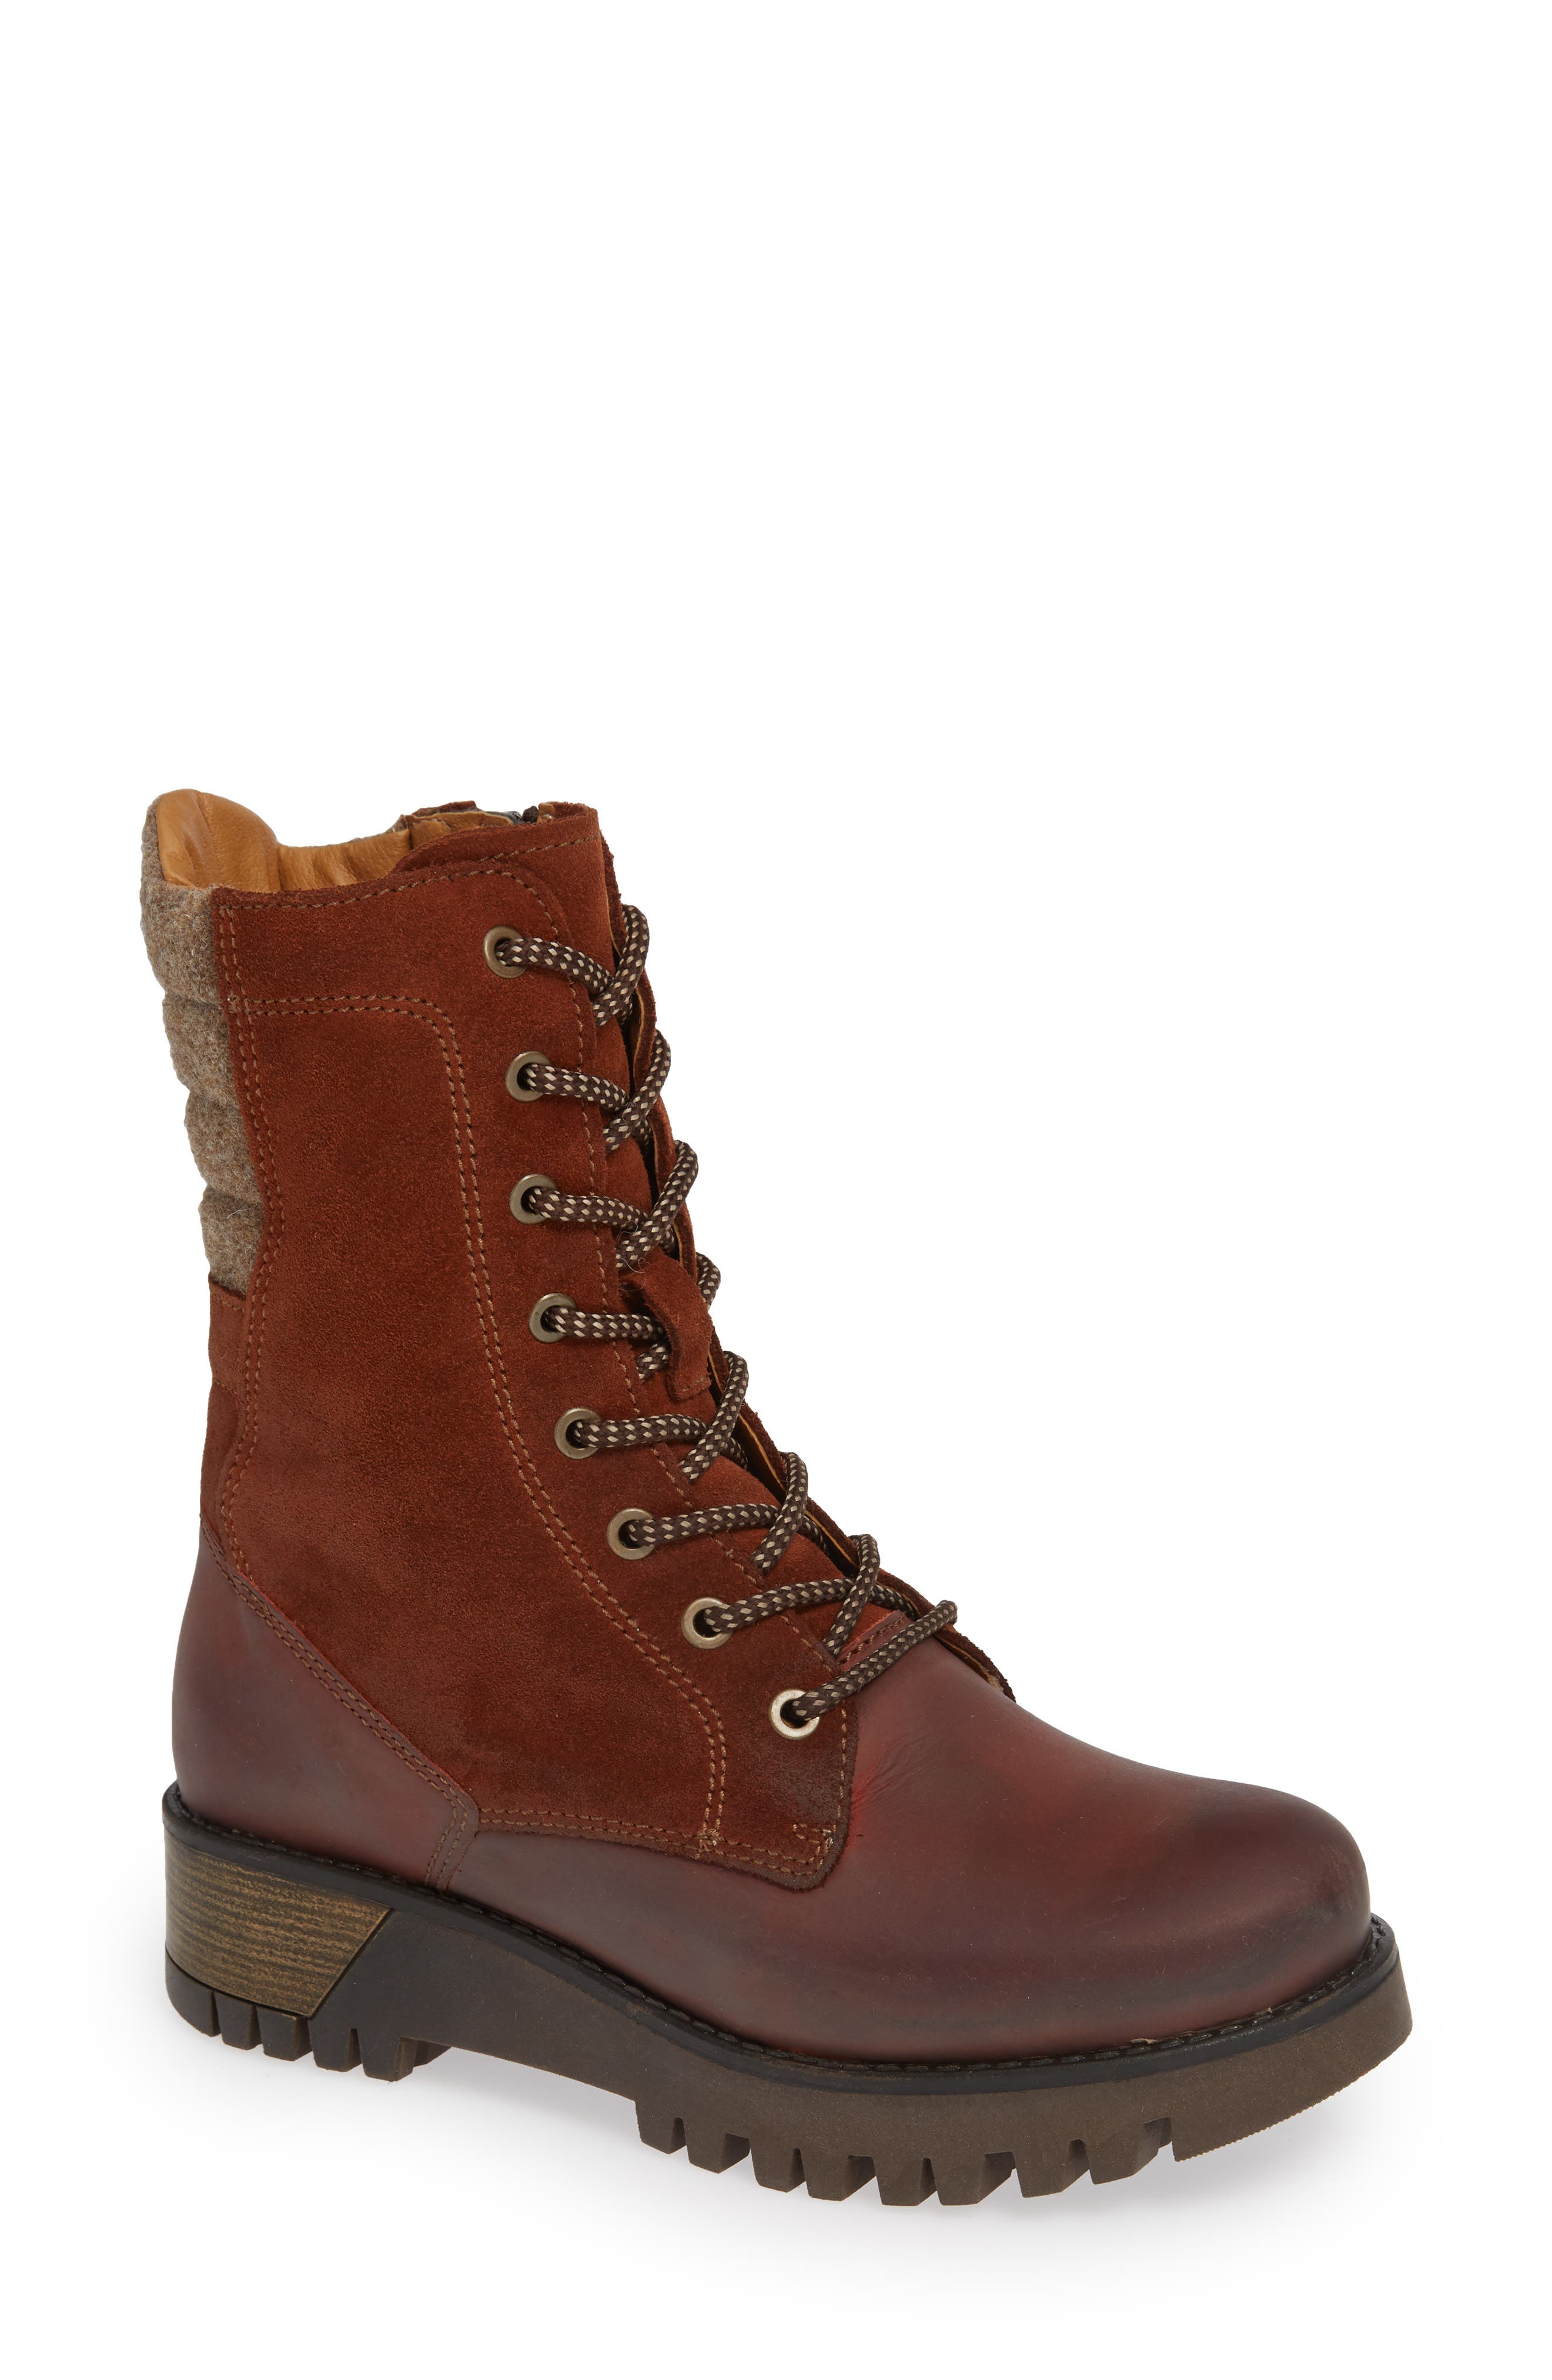 Bos. & Co. Guide Waterproof & Insulated Hiking Boot, Brown